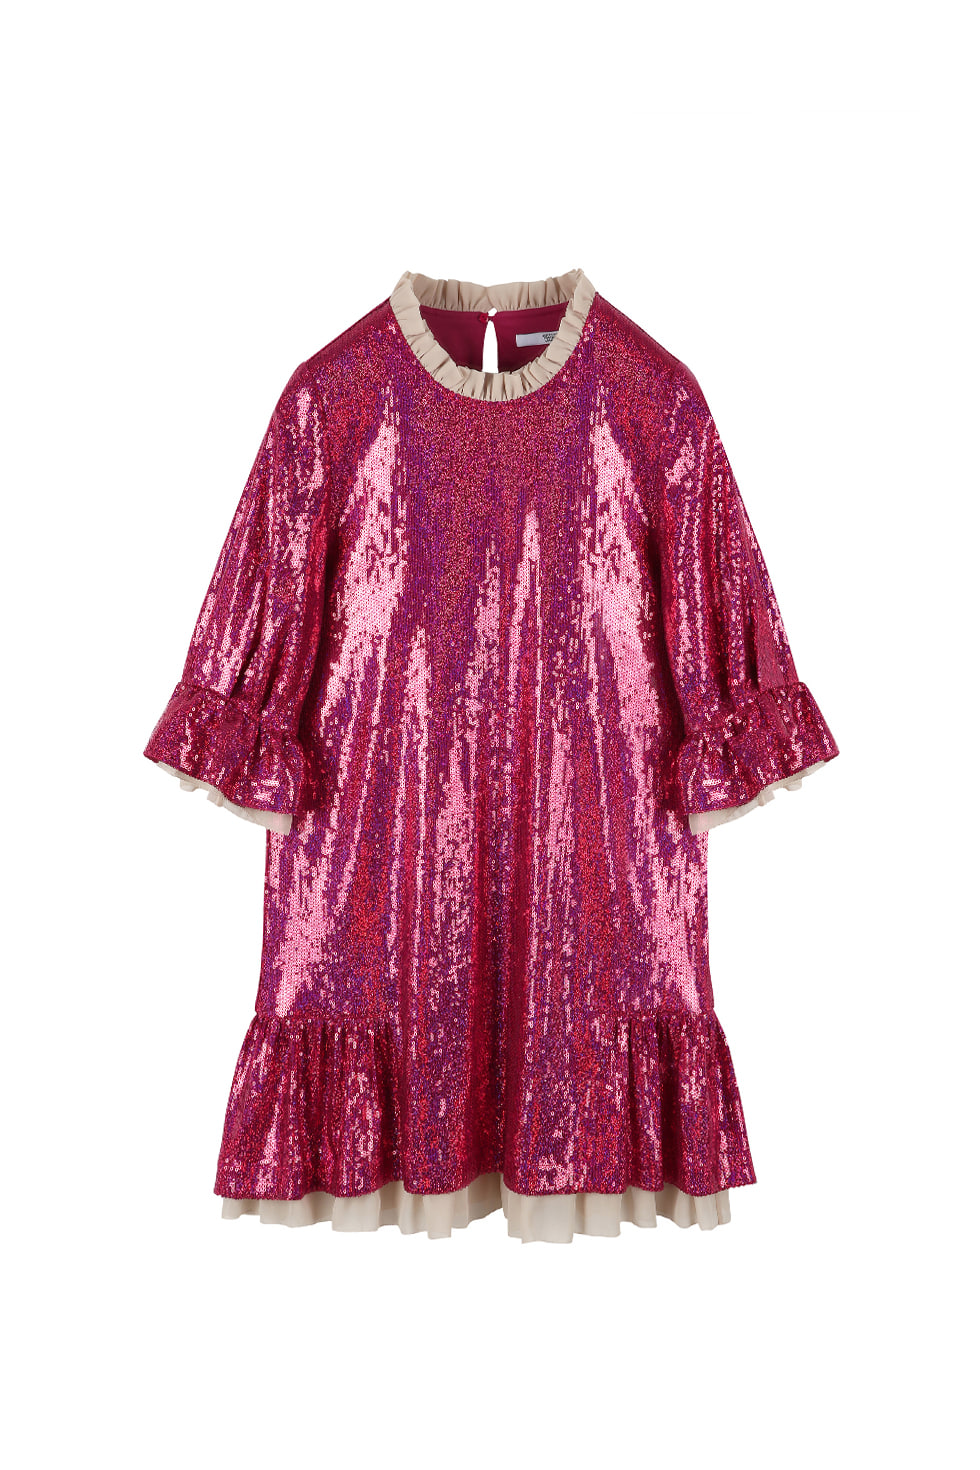 SEQUINED RUFFLE MINI DRESS - PINK